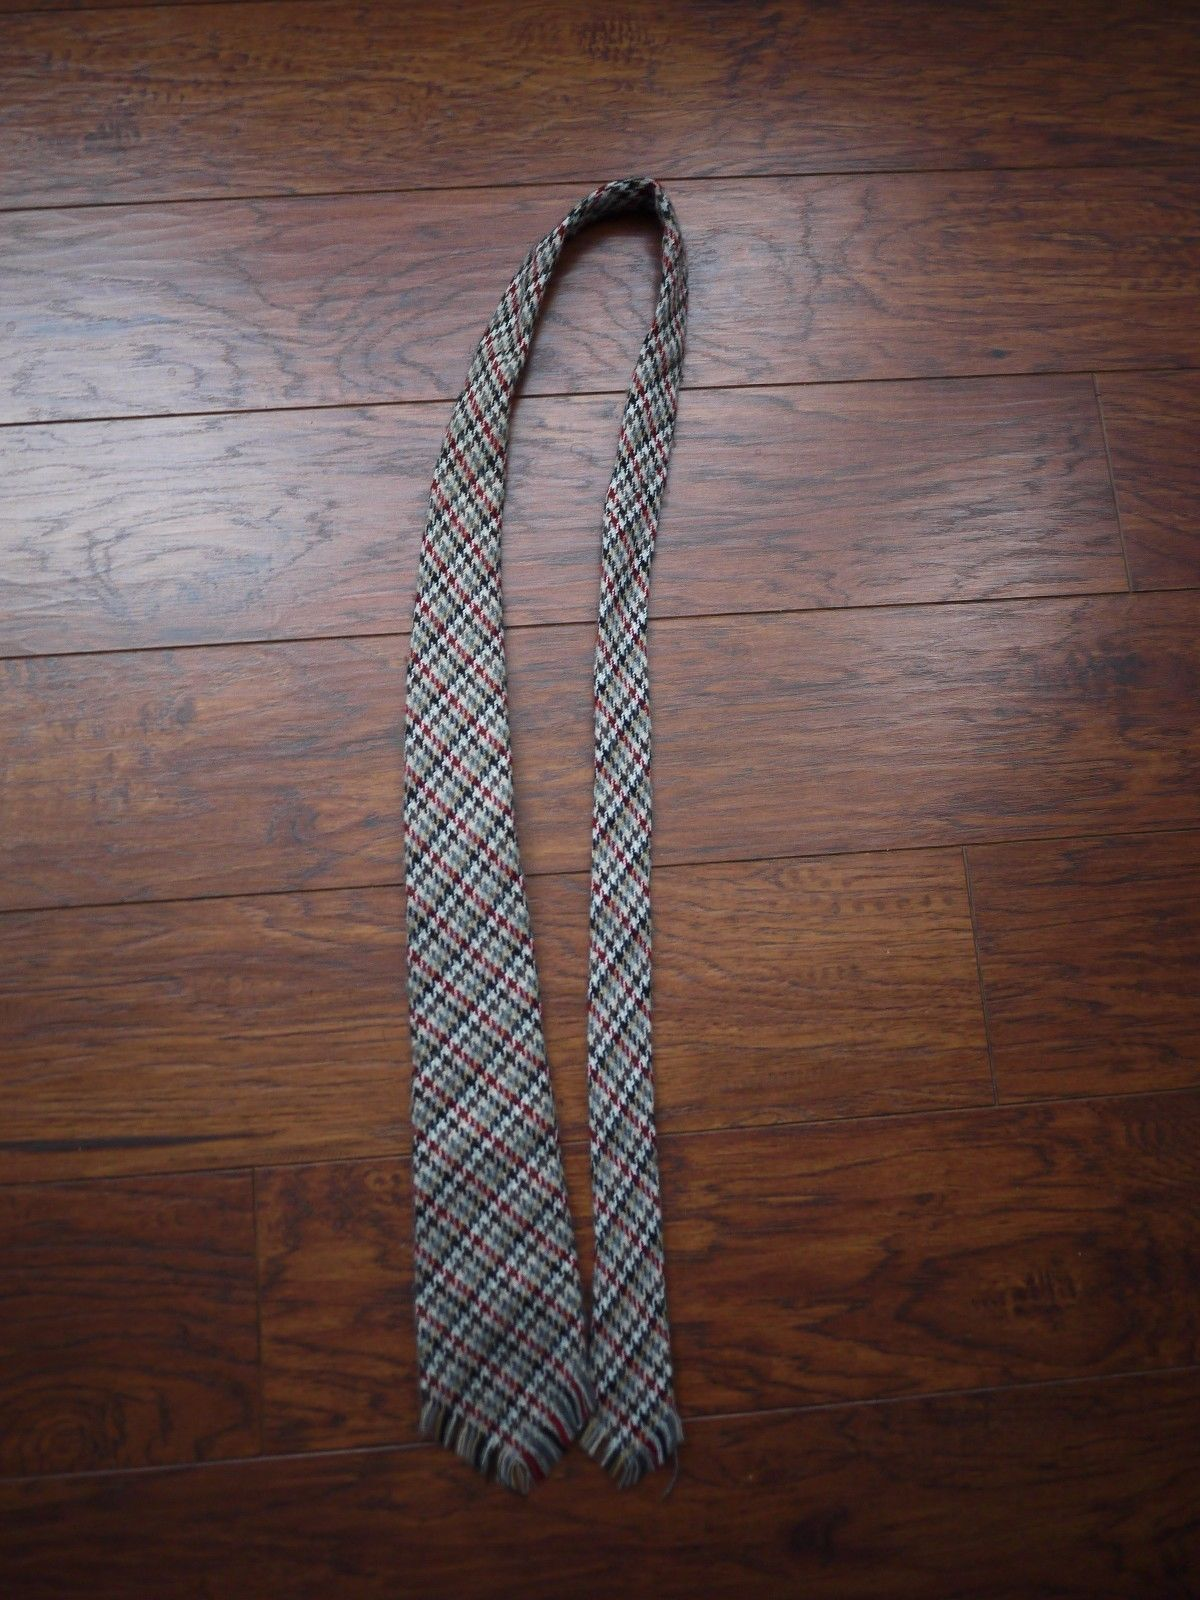 Primary image for Sears Tweed Wool blend plaids checks multi-colored fringes tie